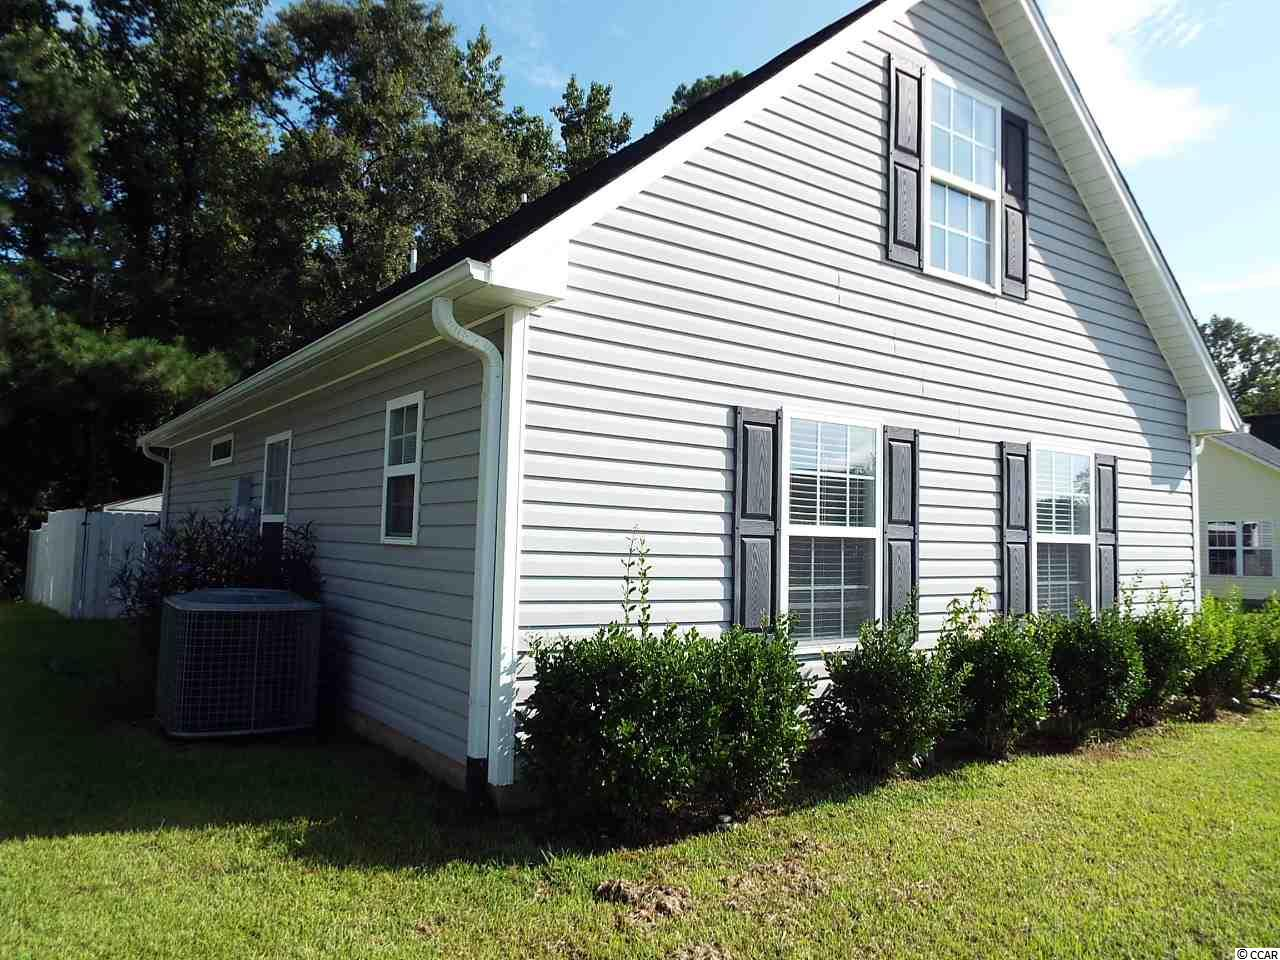 Interested in this Foreclosure-Deed Not Recorded house for $149,900 at  Wood Creek is currently for sale